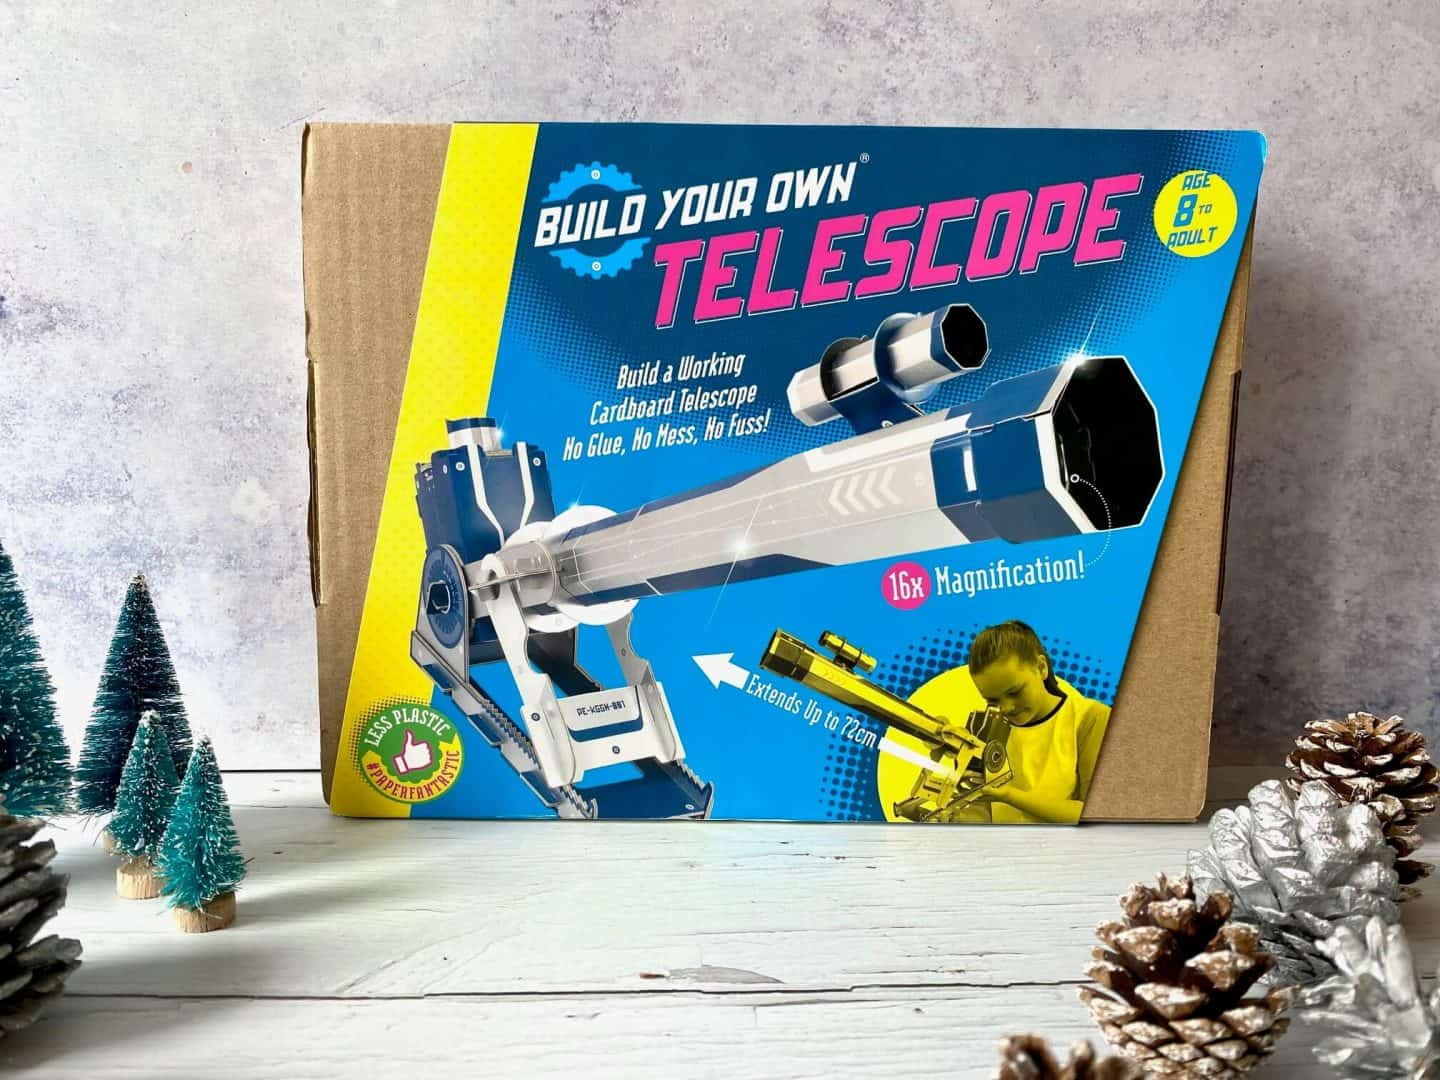 Build your own Telescope - a working telecope made from cardboard